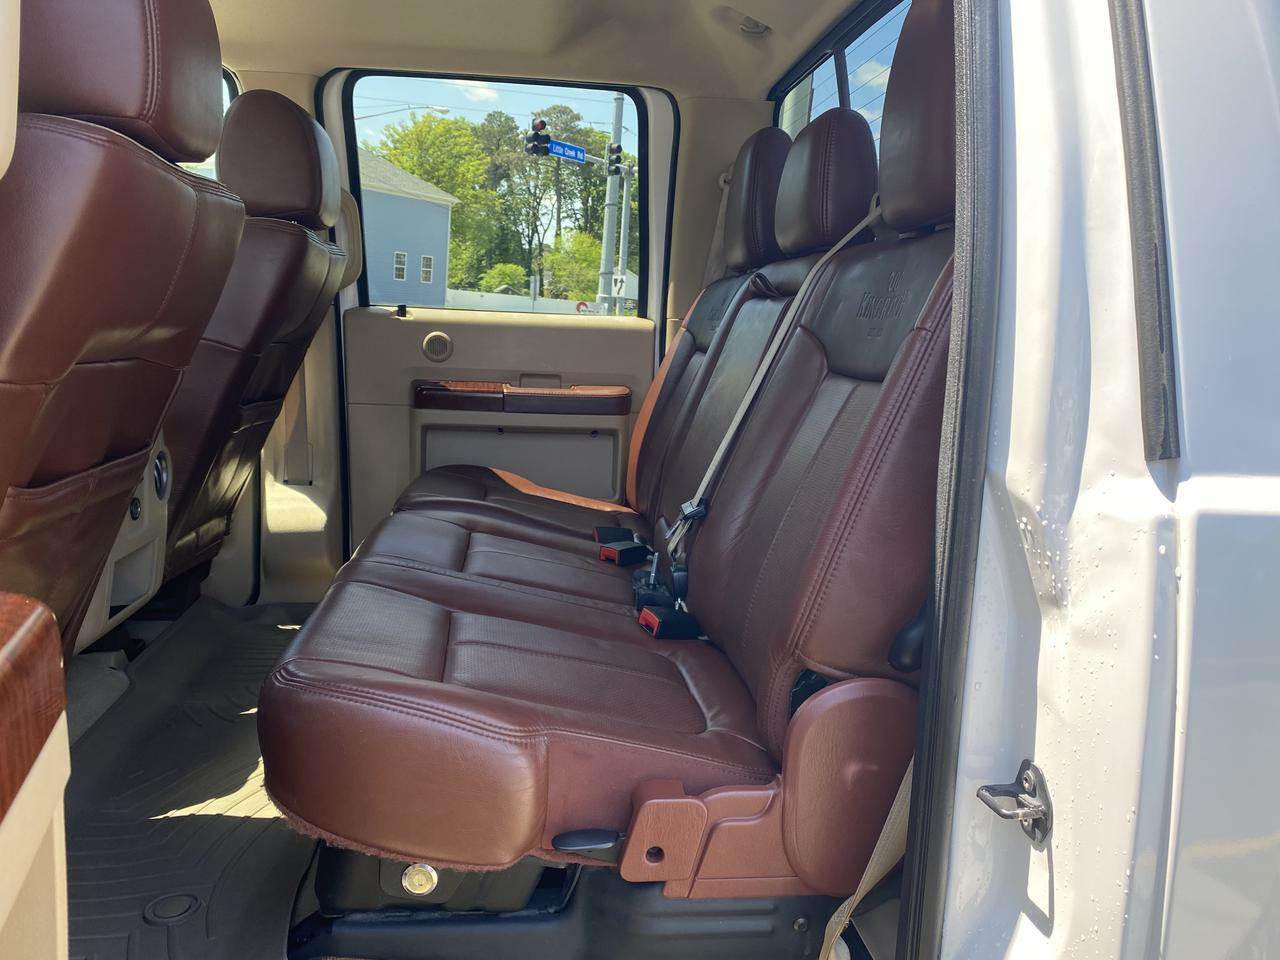 2014 FORD F-250 KING RANCH CREW CAB 4X4, WARRANTY, DIESEL, LEATHER, NAV, HEATED/COOLED SEATS, SUNROOF, 1 OWNER! Norfolk VA